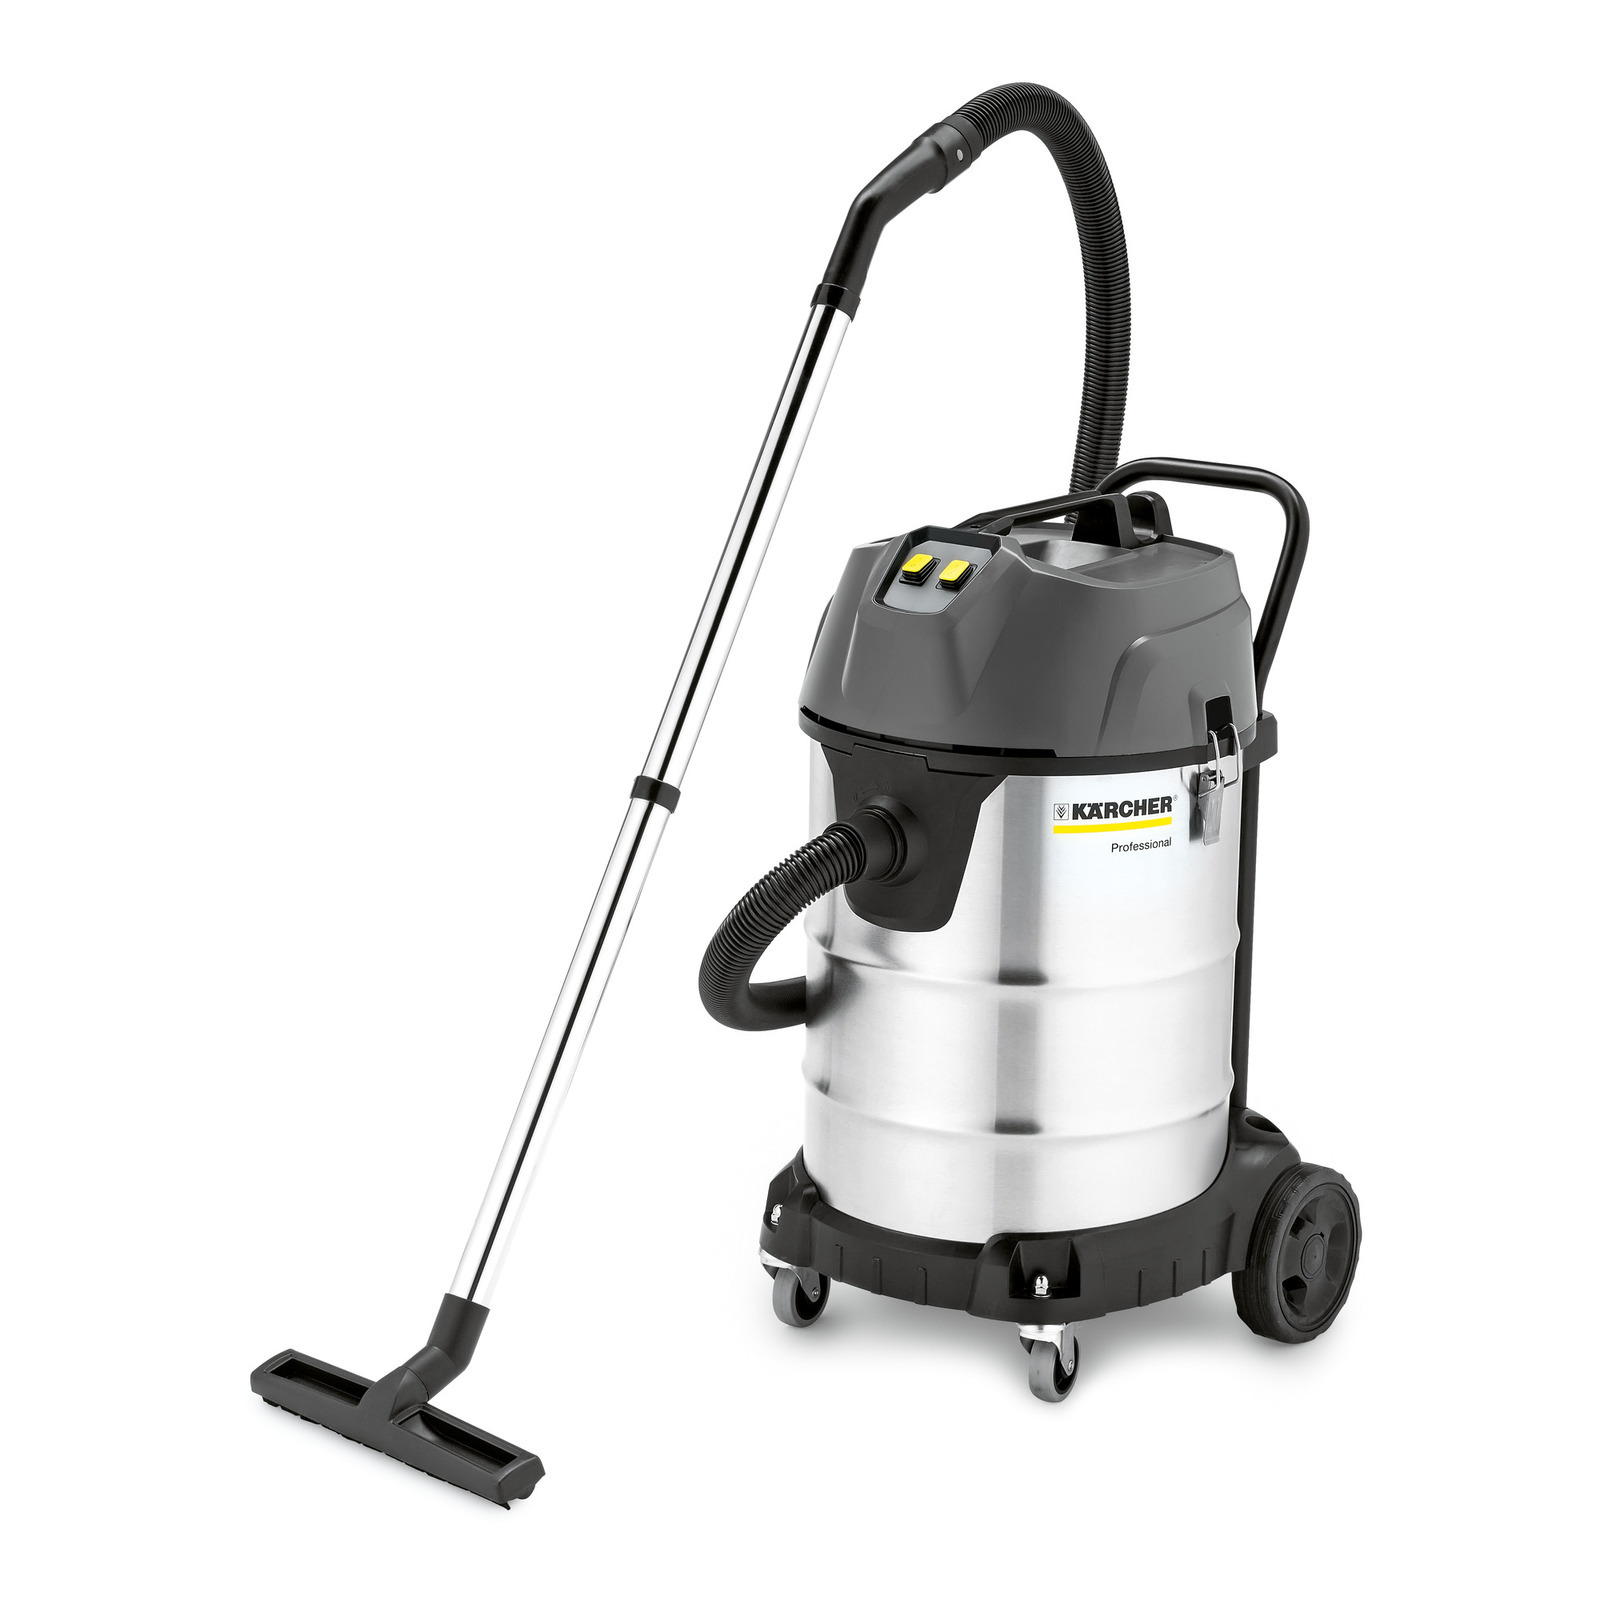 KARCHER Germany kaichi brand industrial and commercial vacuum cleaner nt70 / 2 stainless steel barre